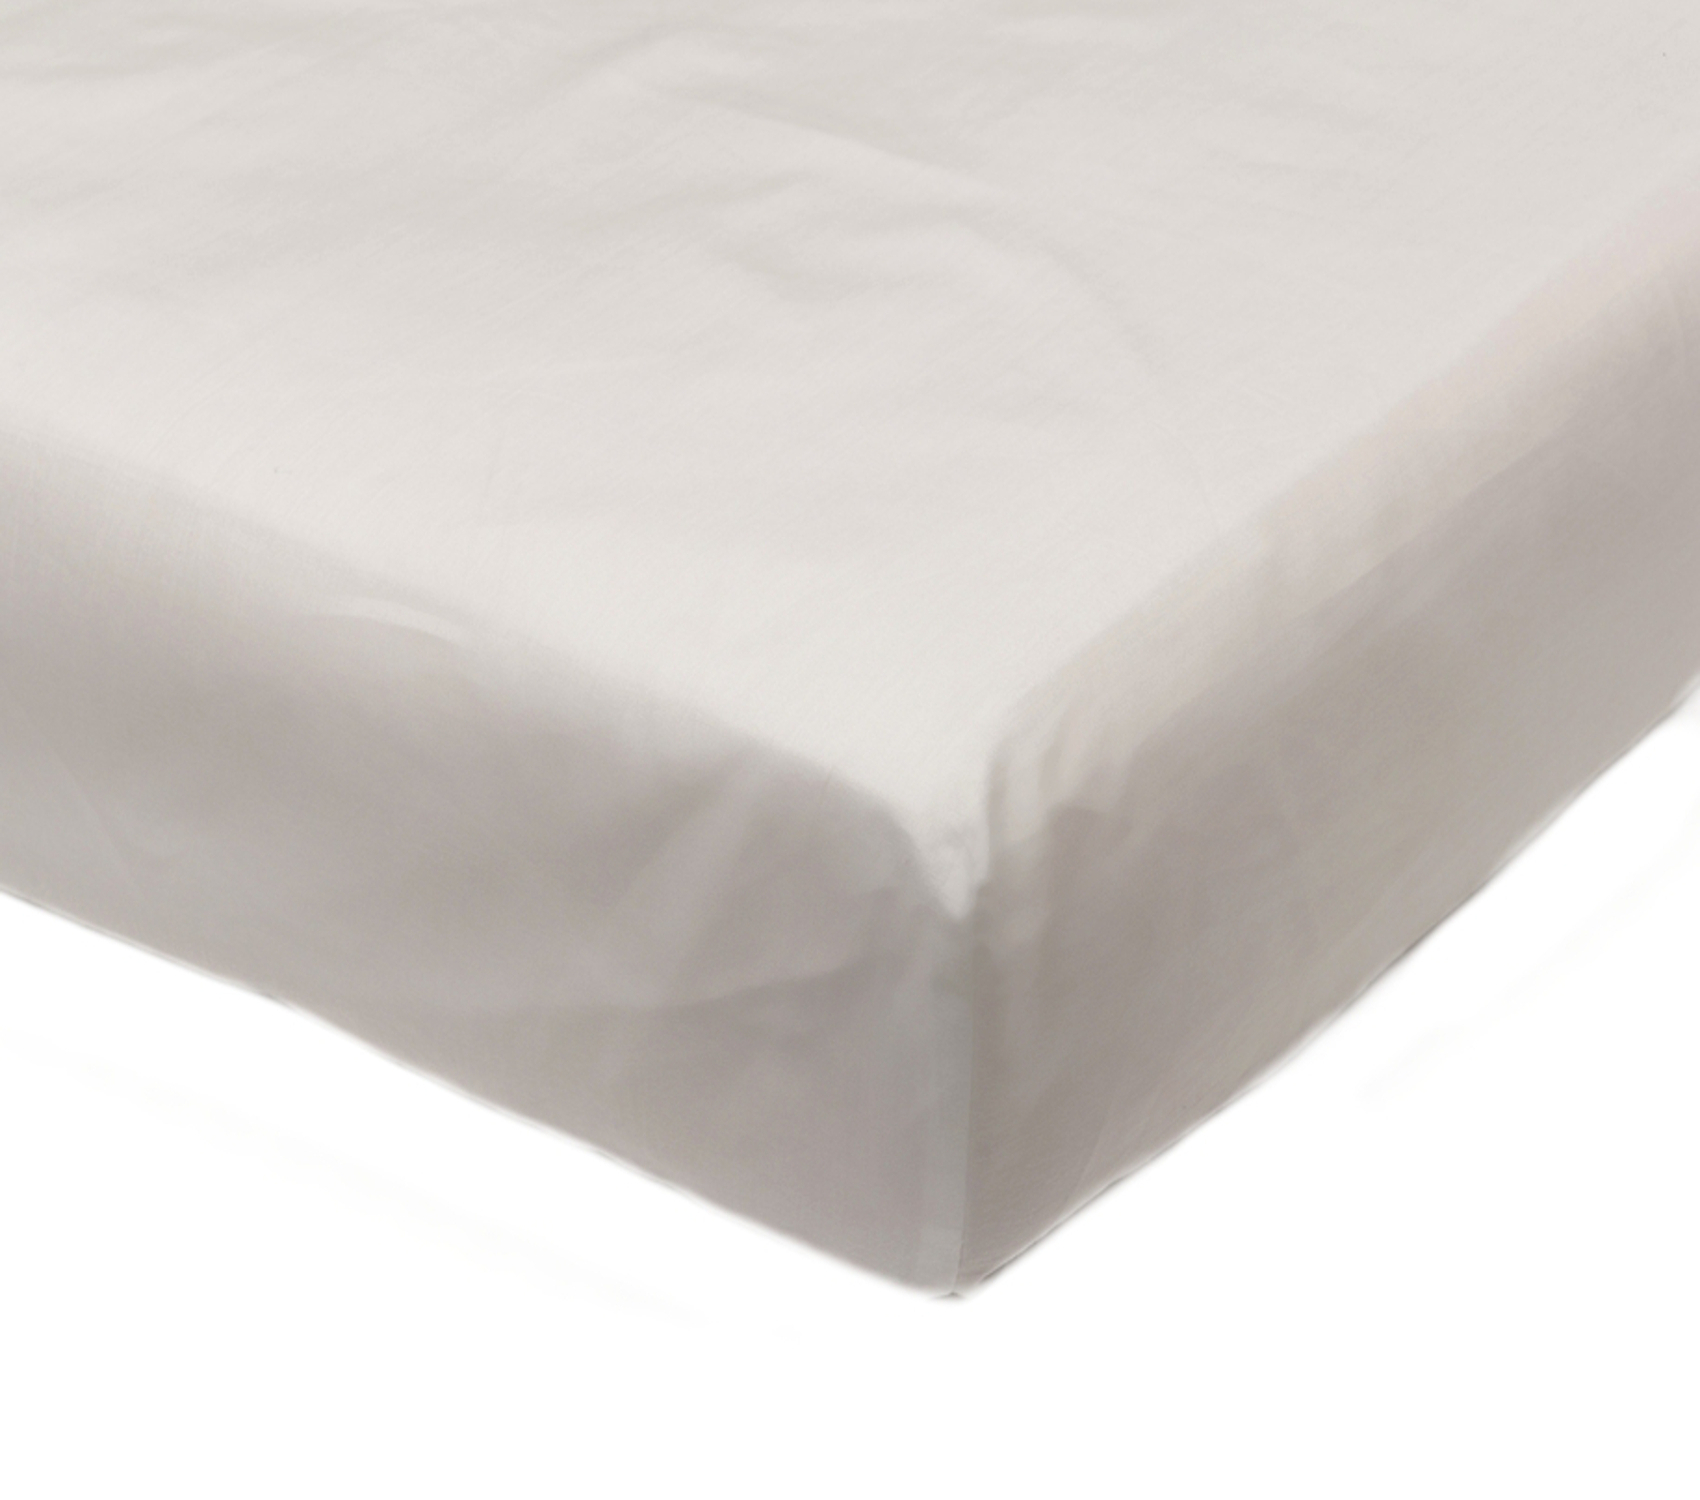 Delightful Polycotton Bed Linen Part - 3: Extra-Long-10-034-Deep-Fitted-Sheet-Easy-